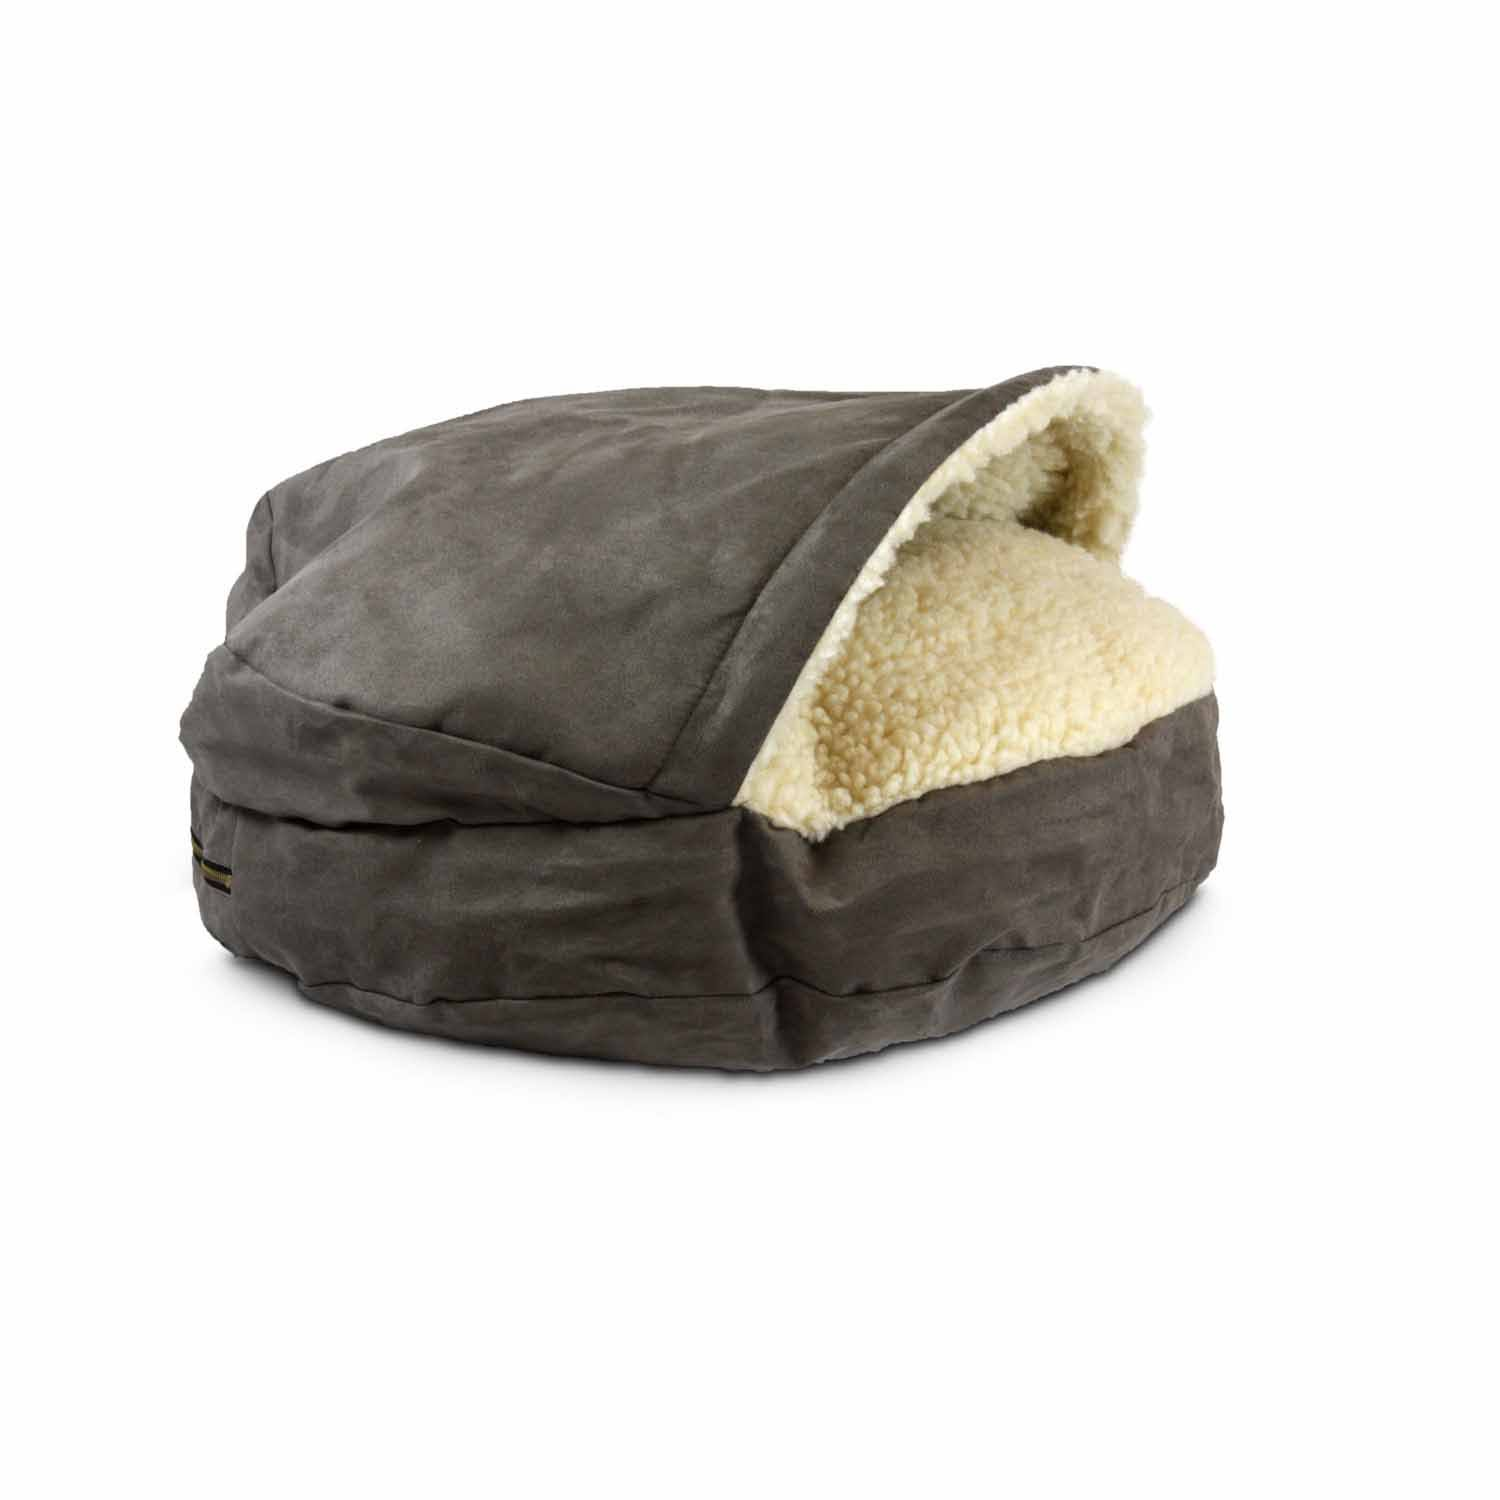 Snoozer Luxury Cozy Cave Pet Bed - Dark Chocolate, Small